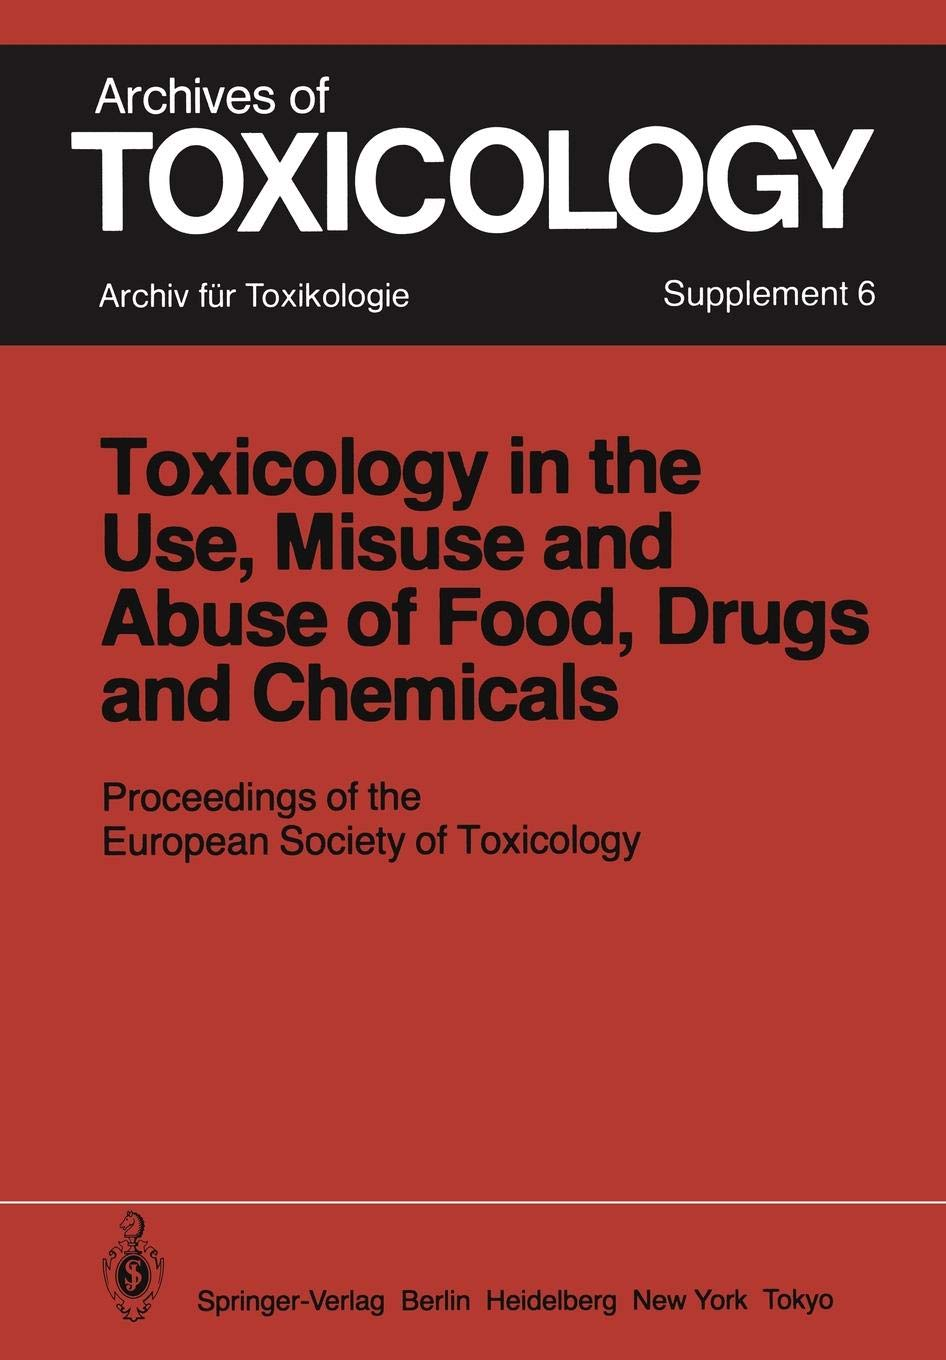 Toxicology in the Use, Misuse, and Abuse of Food, Drugs, and Chemicals: Proceedings of the European Society of Toxicology Meeting, held in Tel Aviv, March 21–24, 1982 (Archives of Toxicology)